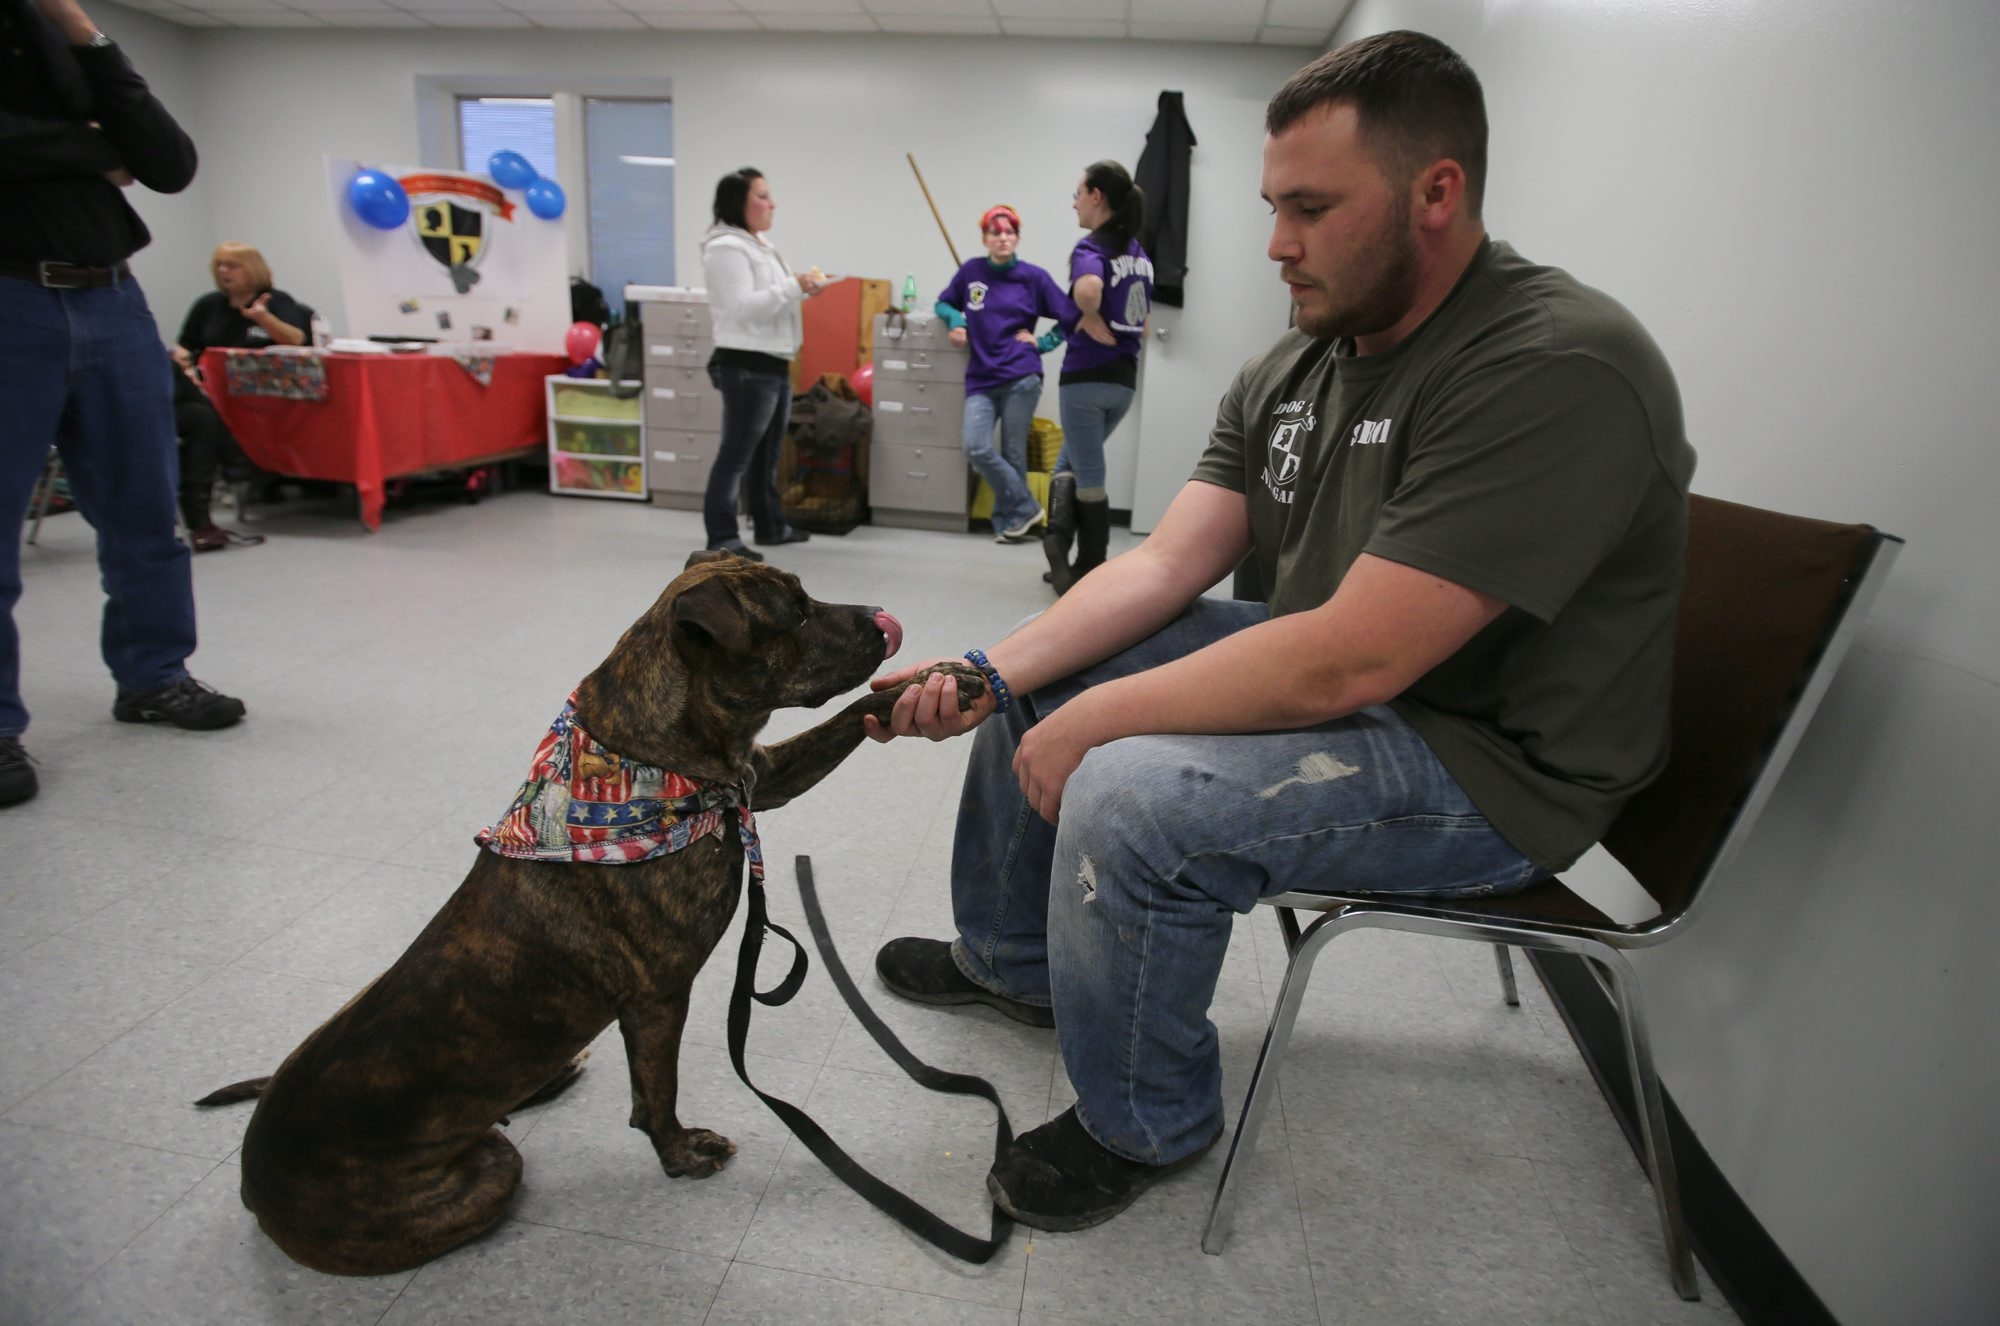 Sergio Cardenas of Lewiston interacts with his dog Zera, at the Niagara County SPCA in Niagara Falls, Monday, November 11, 2013.  Cardenas served with the U.S. Army from 2006 to 2008.  (Charles Lewis/Buffalo News)